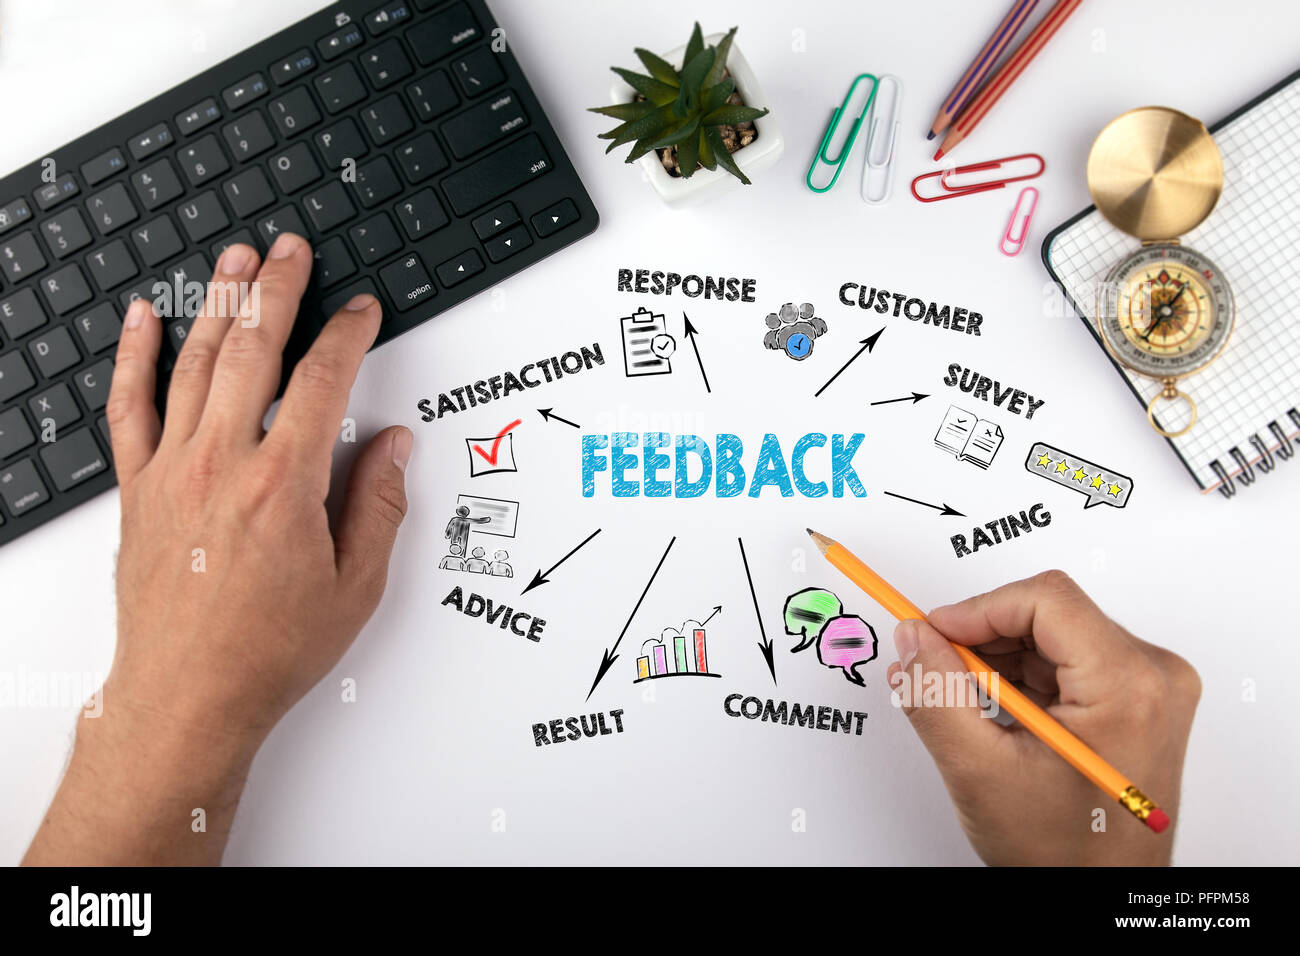 Feedback Concept. Chart with keywords and icons - Stock Image